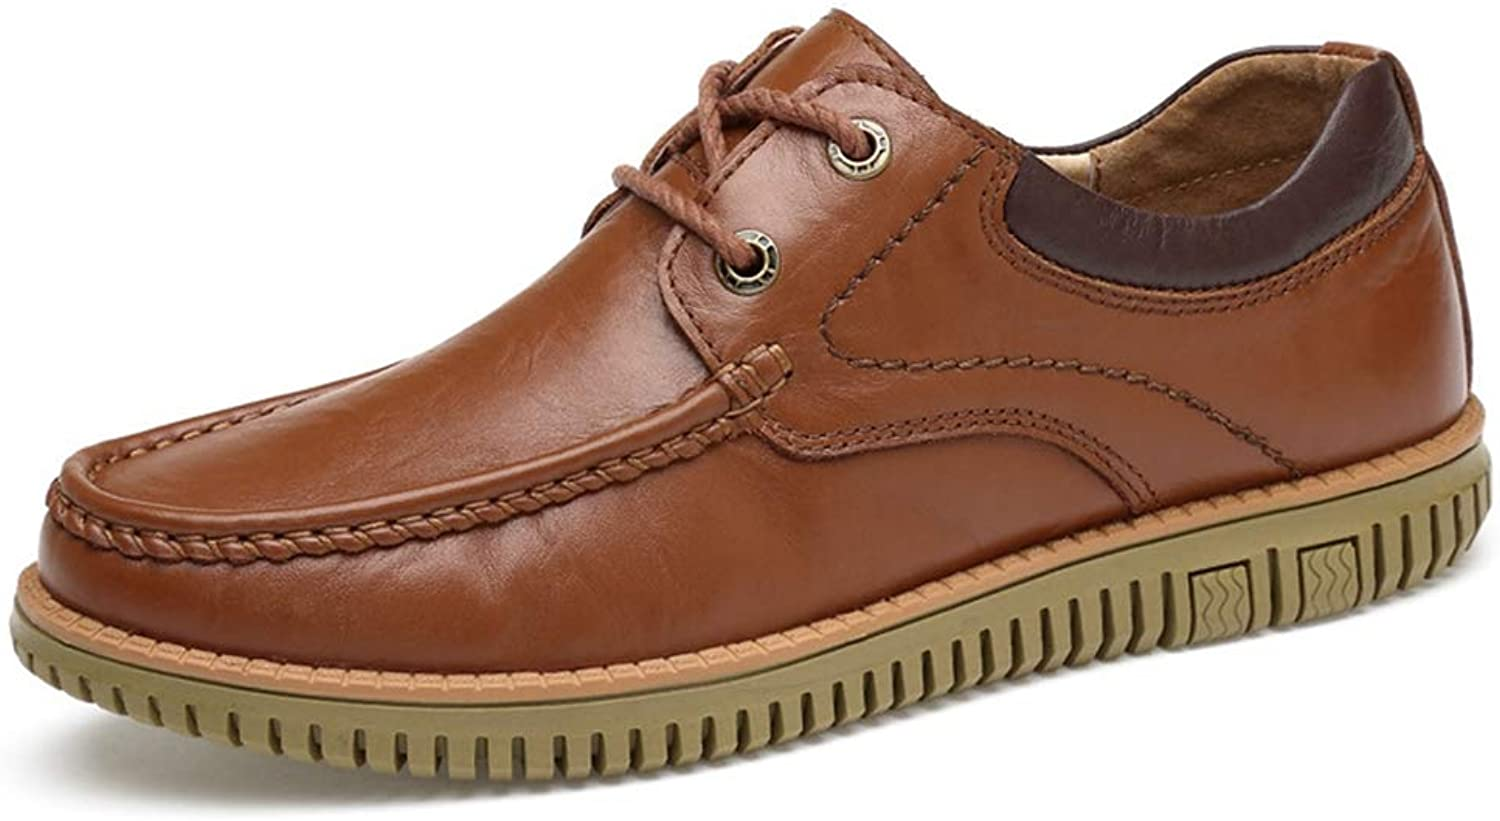 Sam Carle Men's Oxfords Moc-Toe Anti-Slip Lace-up Comfortable Brown Casual shoes